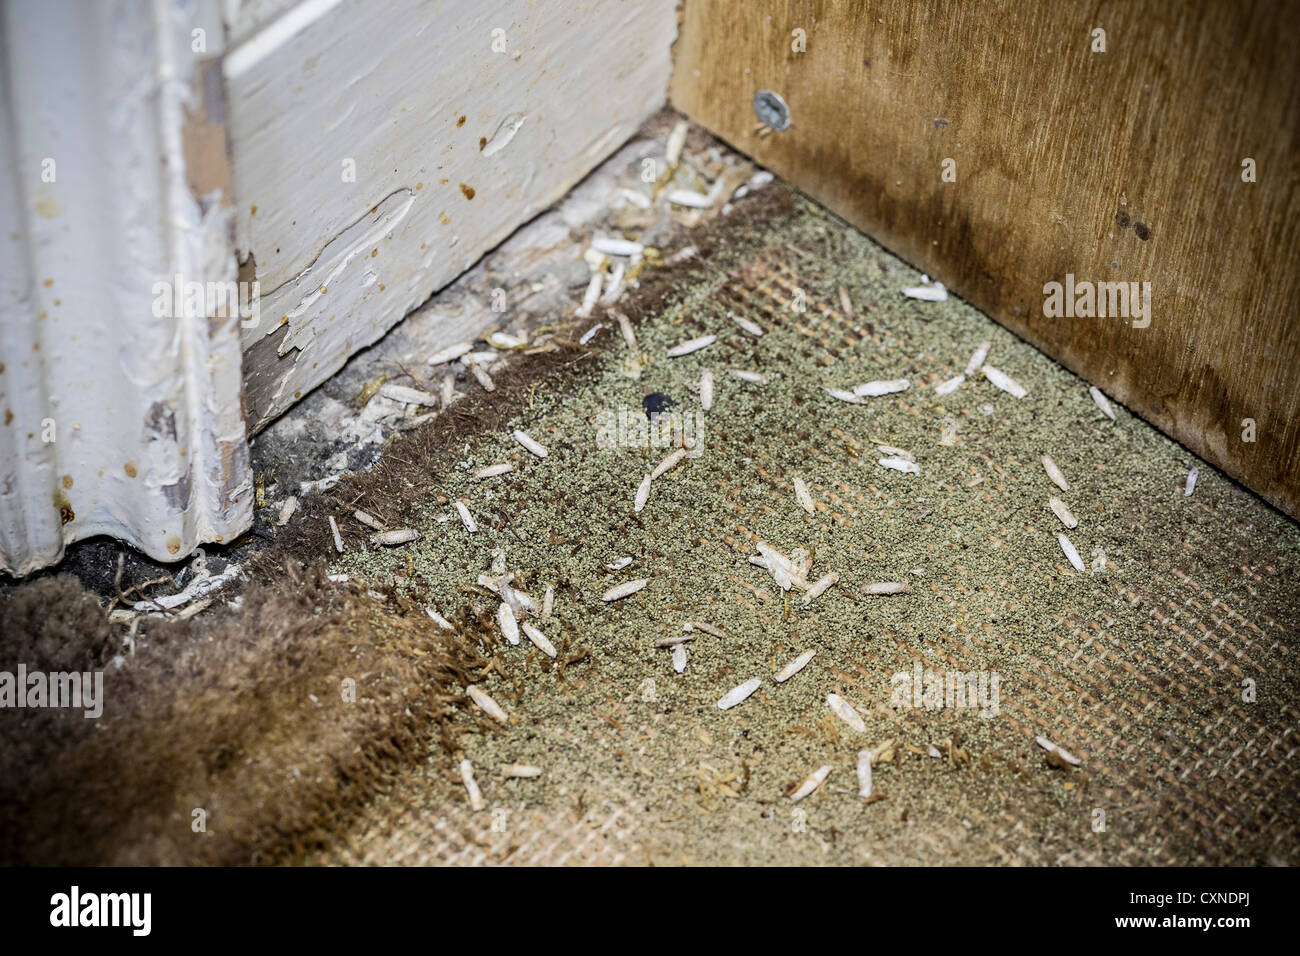 pupae of the carpet moth on a patch of moth eaten wool. Black Bedroom Furniture Sets. Home Design Ideas